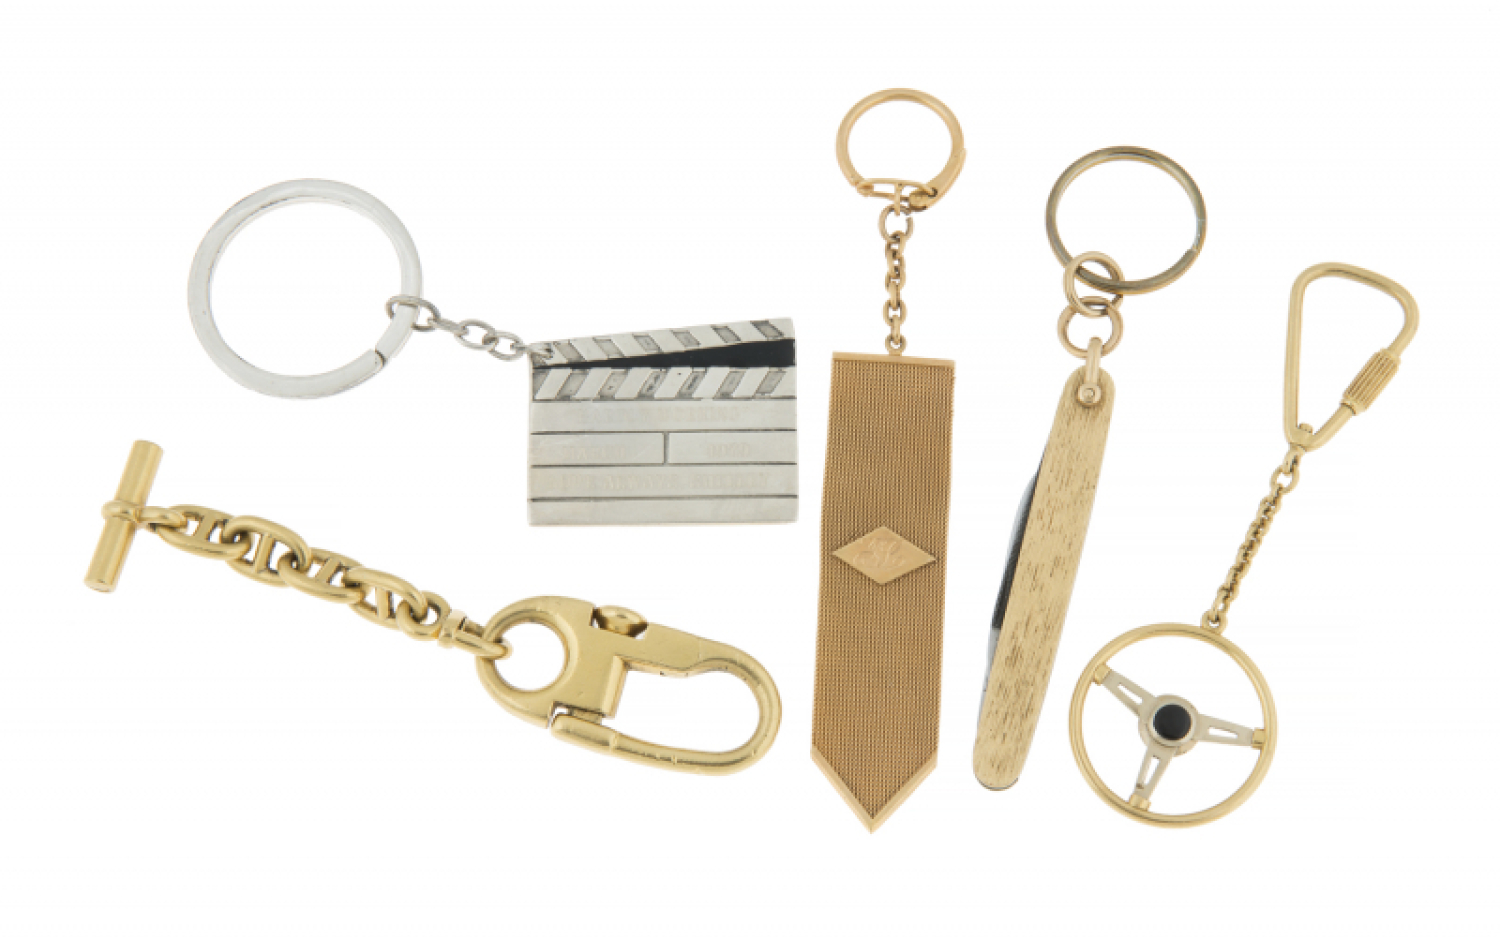 JERRY LEWIS GOLD AND PERSONALIZED KEYCHAINS - Price Estimate: $1500